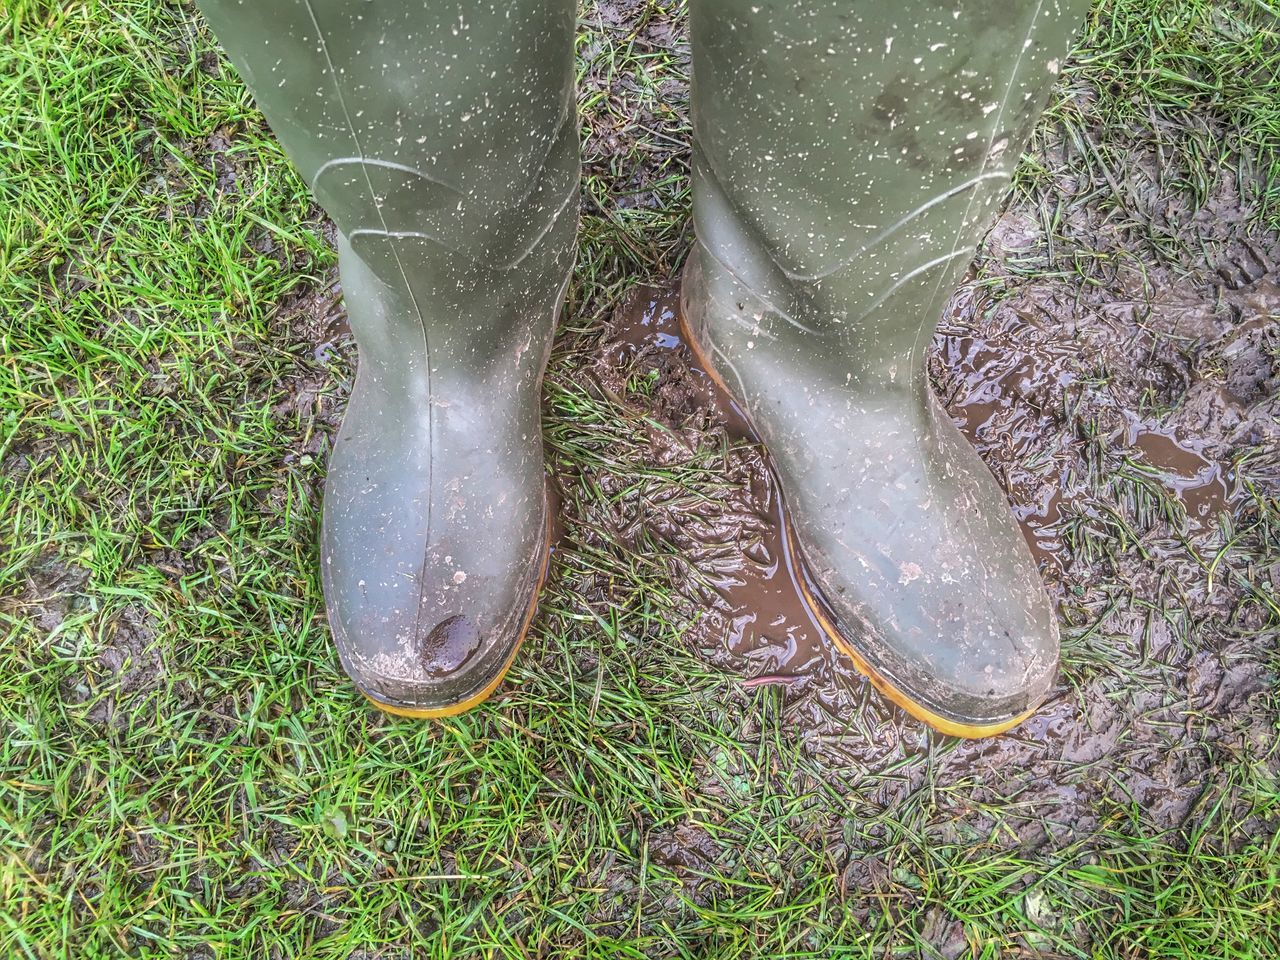 Low Section Human Foot Shoe Grass Human Leg High Angle View Growth Nature One Person Day Outdoors Water Close-up Human Body Part Animal Themes People Mud Muddy Boots Wellington Boots Wellies